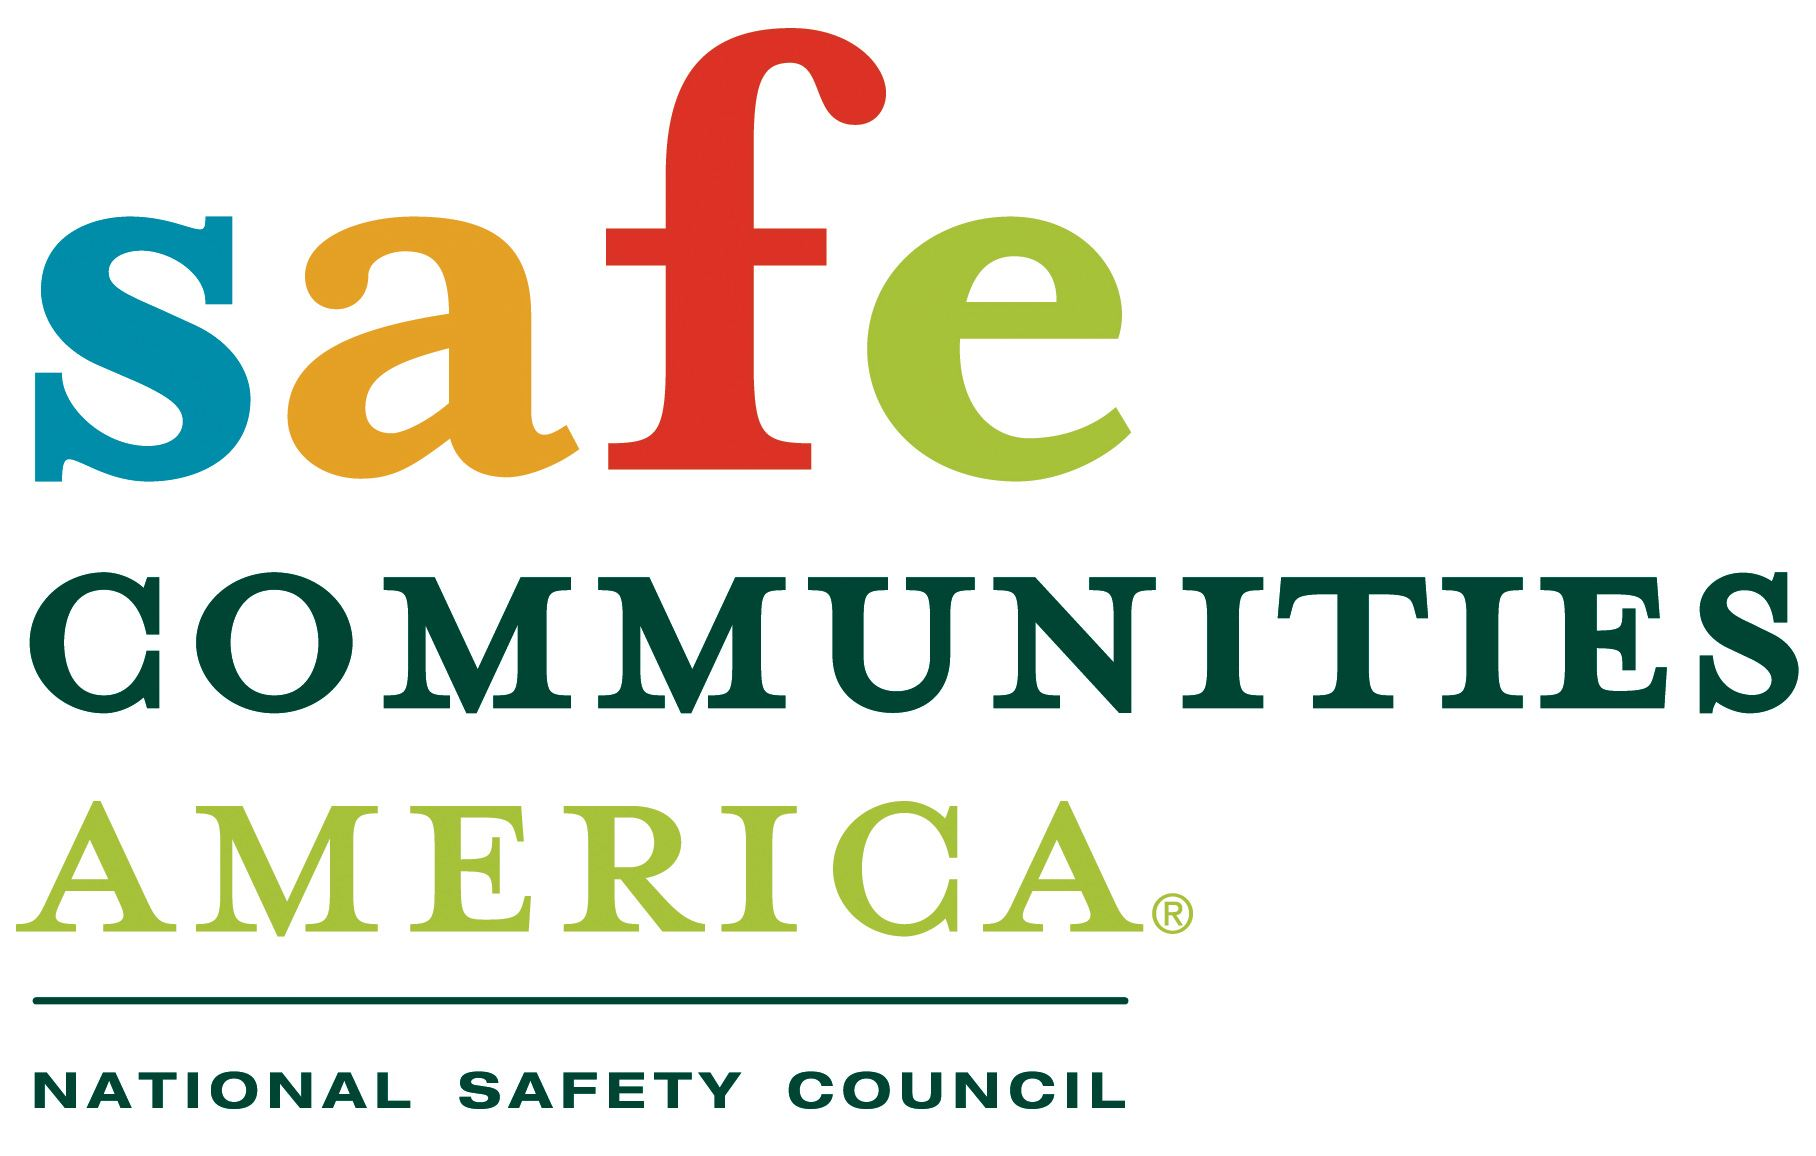 Mt lebanon pa official website official website 2017 safe communities america application aiddatafo Gallery